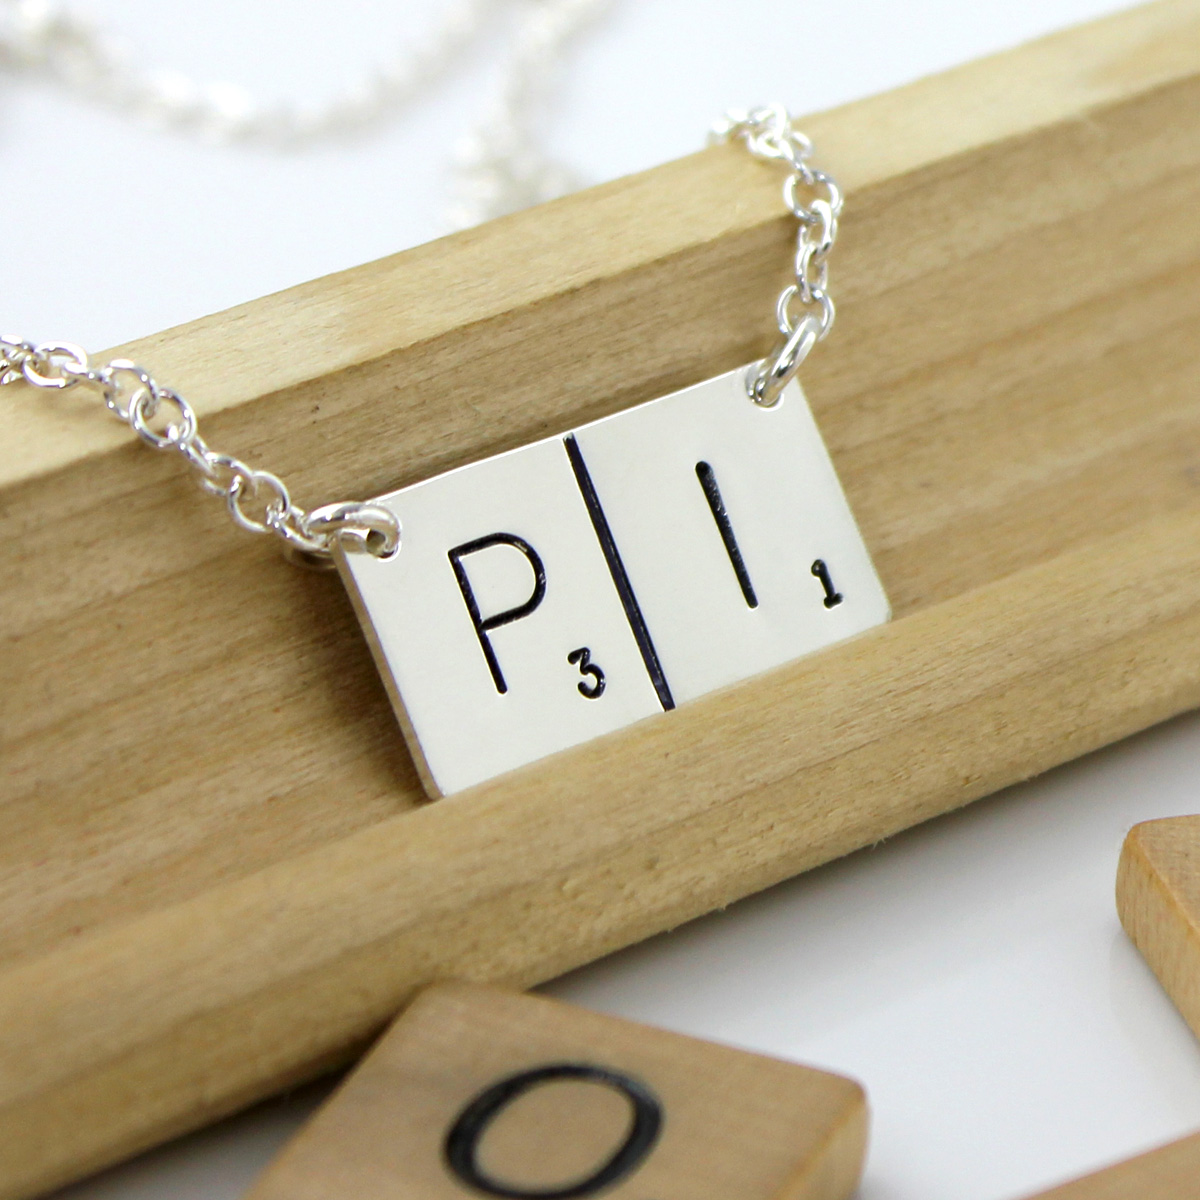 Scrabble Inspired Necklace - Pi